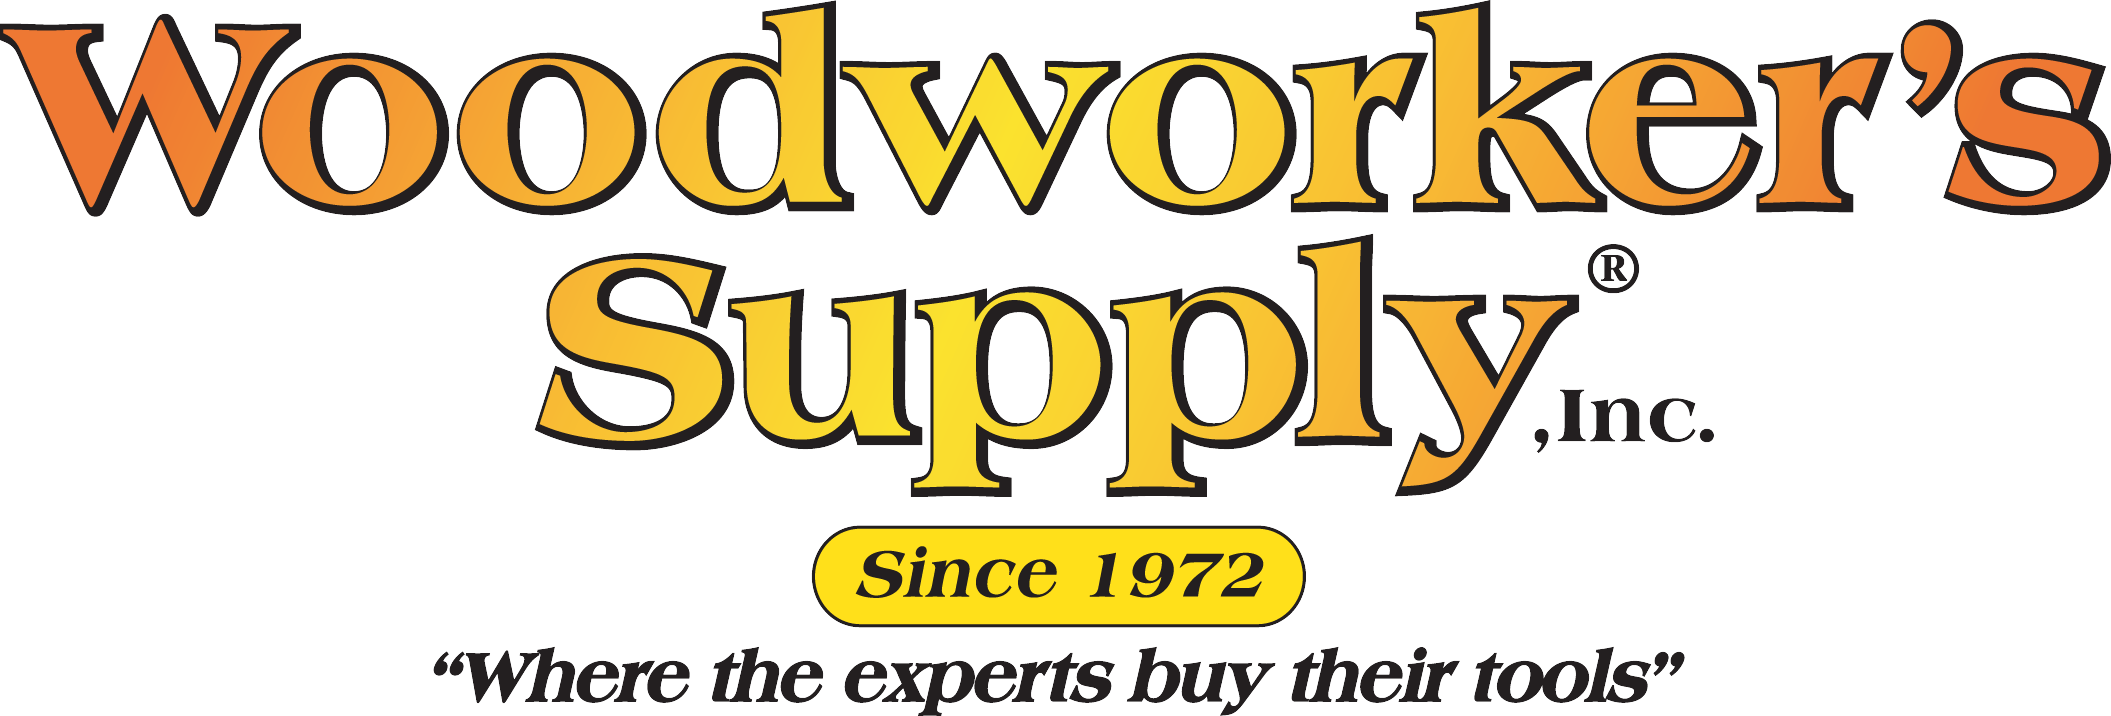 Woodworker S Supply Inc About Us